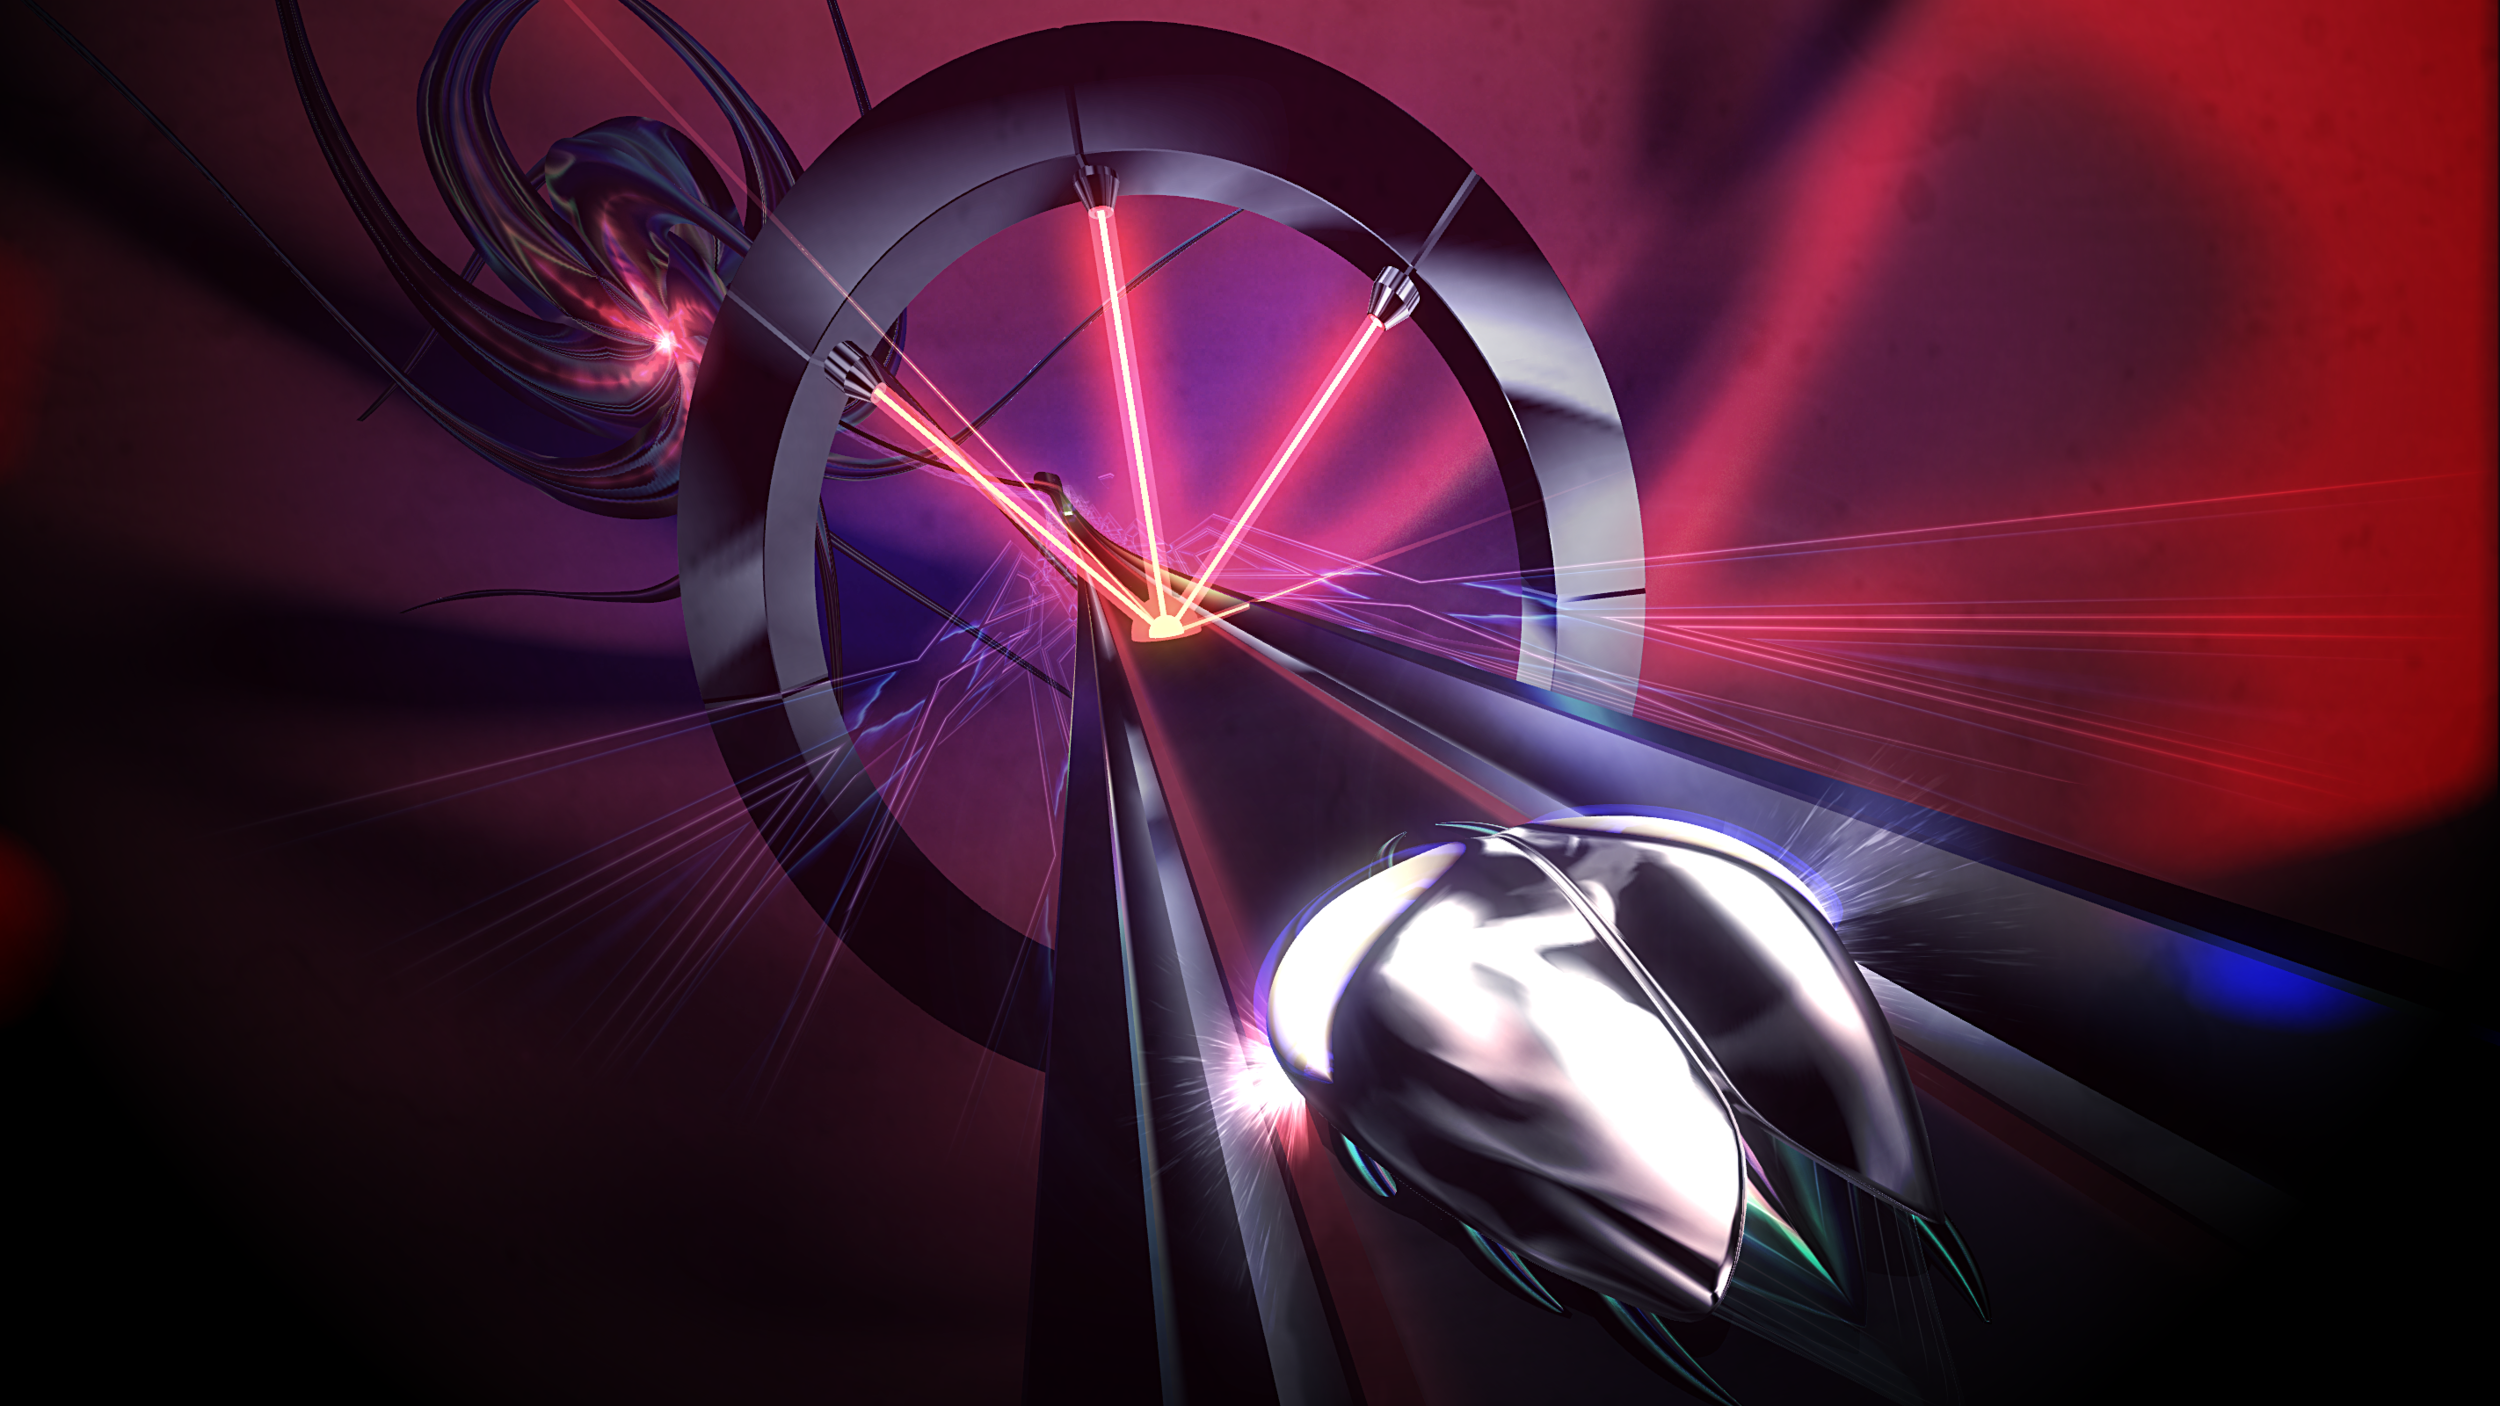 Thumper_screenshot_5.png